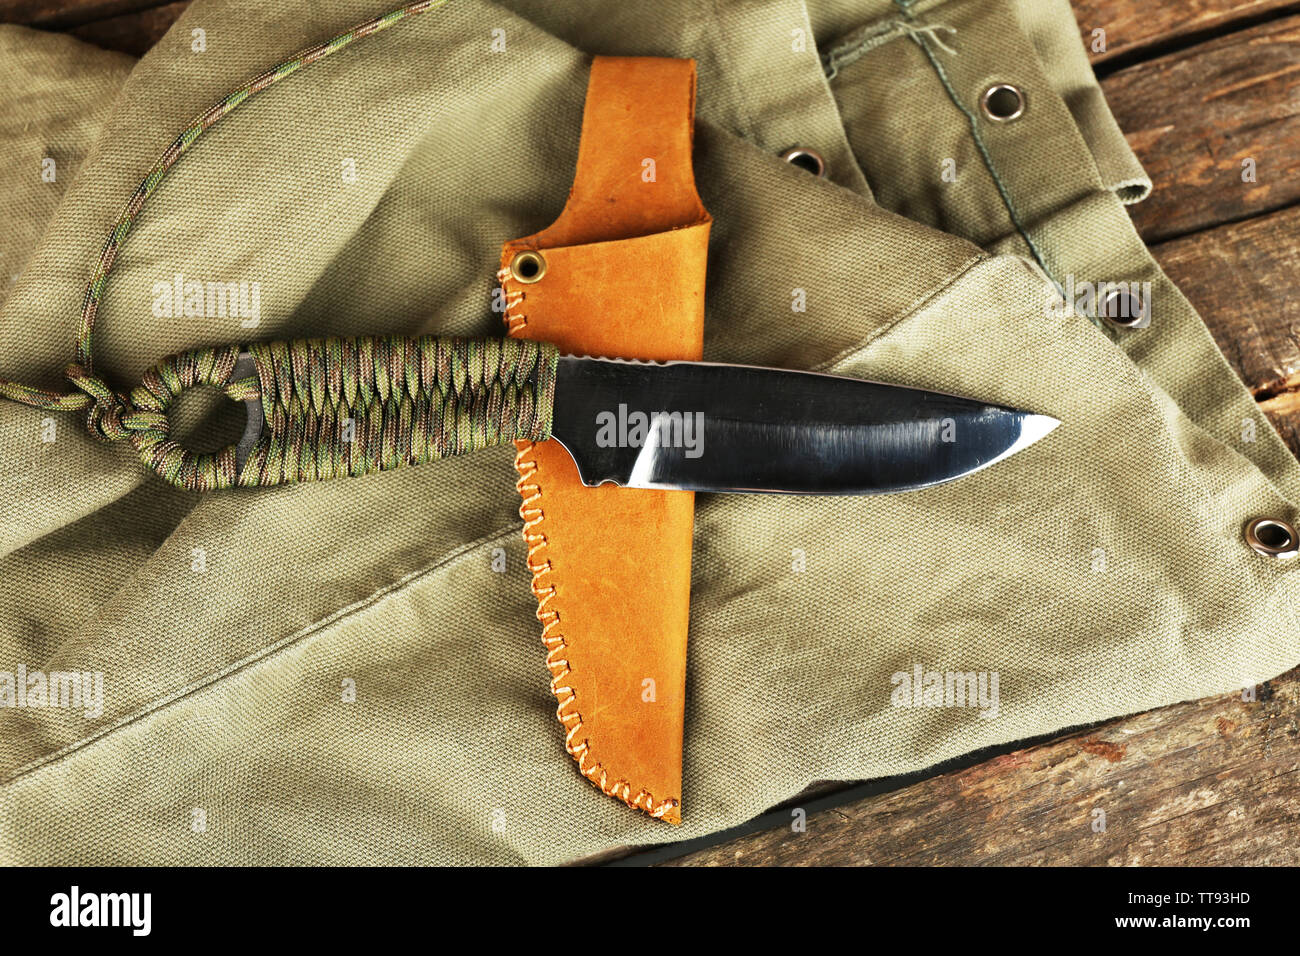 Hunting knife on wooden table with sackcloth, closeup - Stock Image